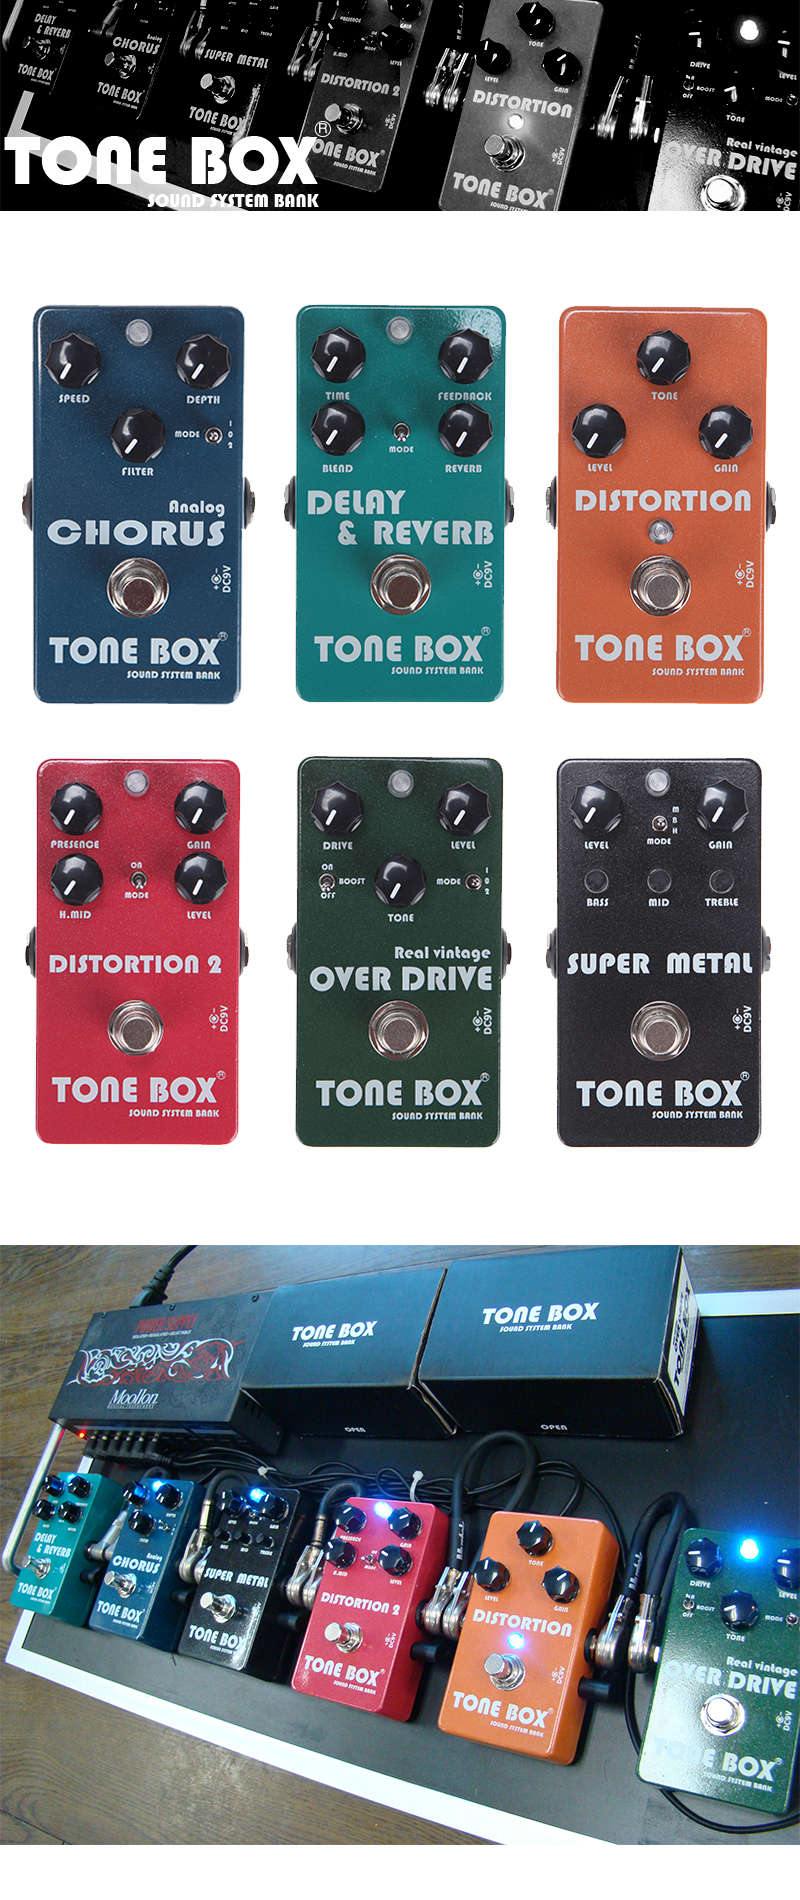 tonebox_news.jpg